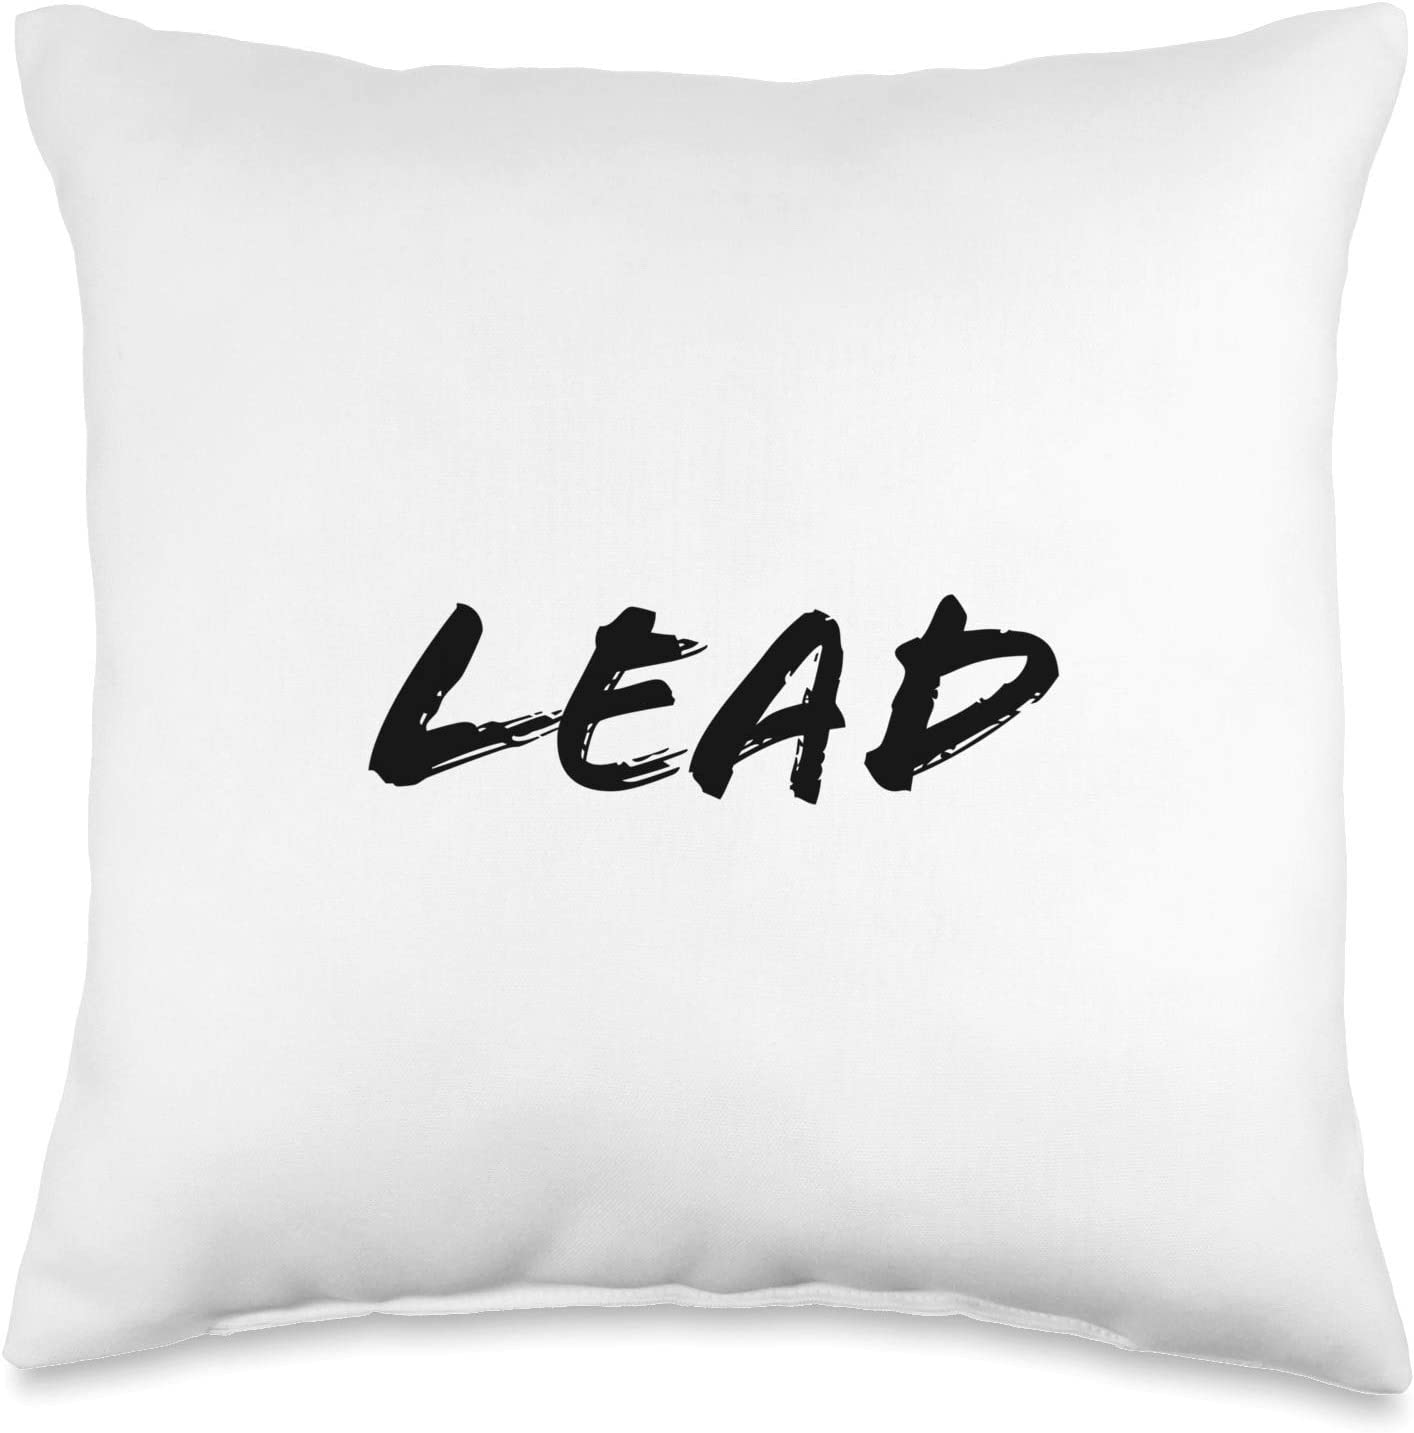 Statement Blend Rapid 2021 new rise Lead Throw Pillow Multicolor 16x16